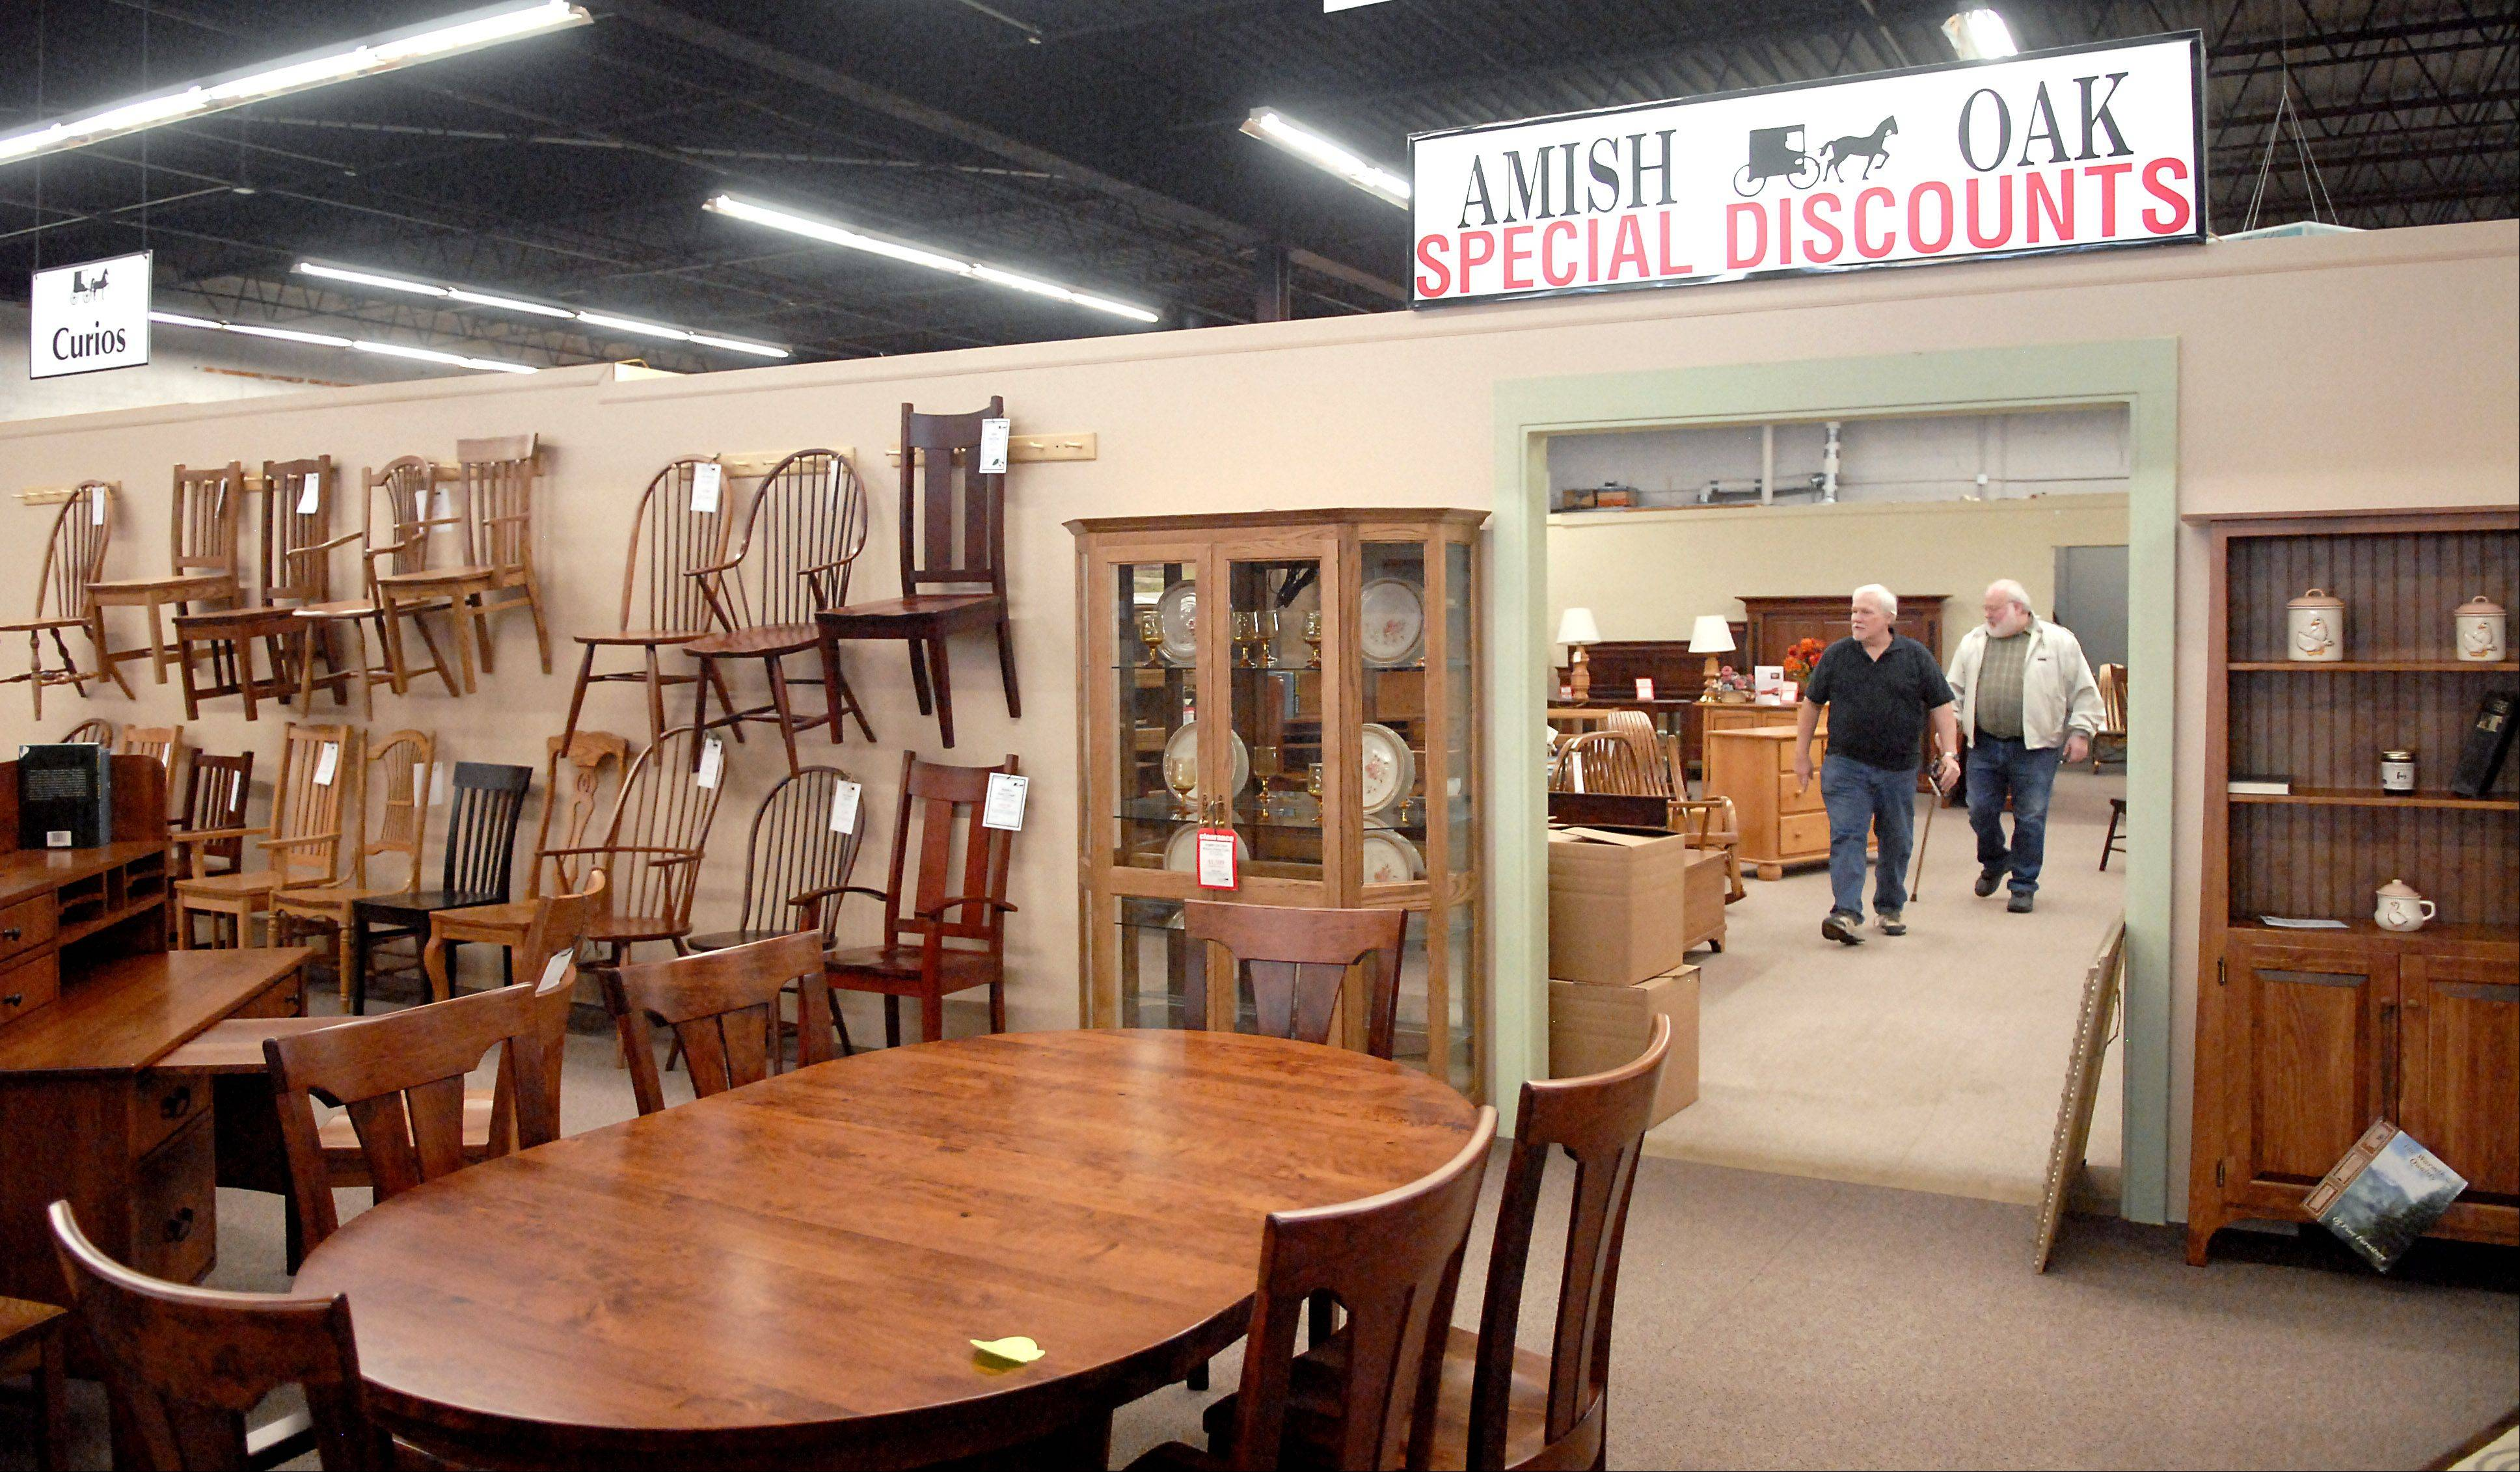 Burress Amish Furniture At 663 Villa St. In Elgin Has Been In Business  Since 1983